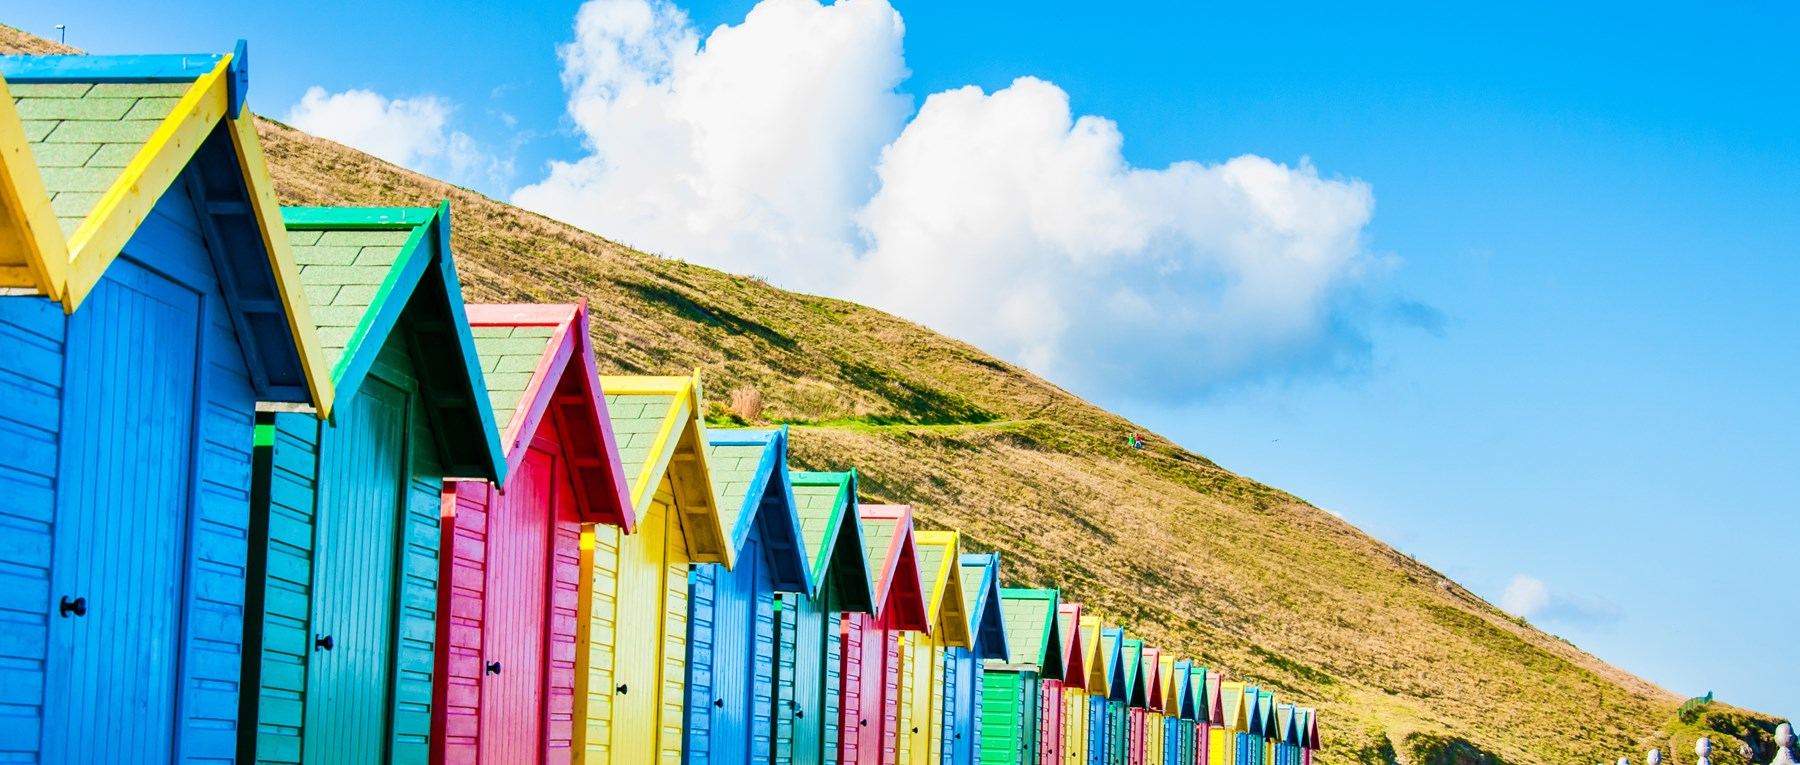 A row of beach huts